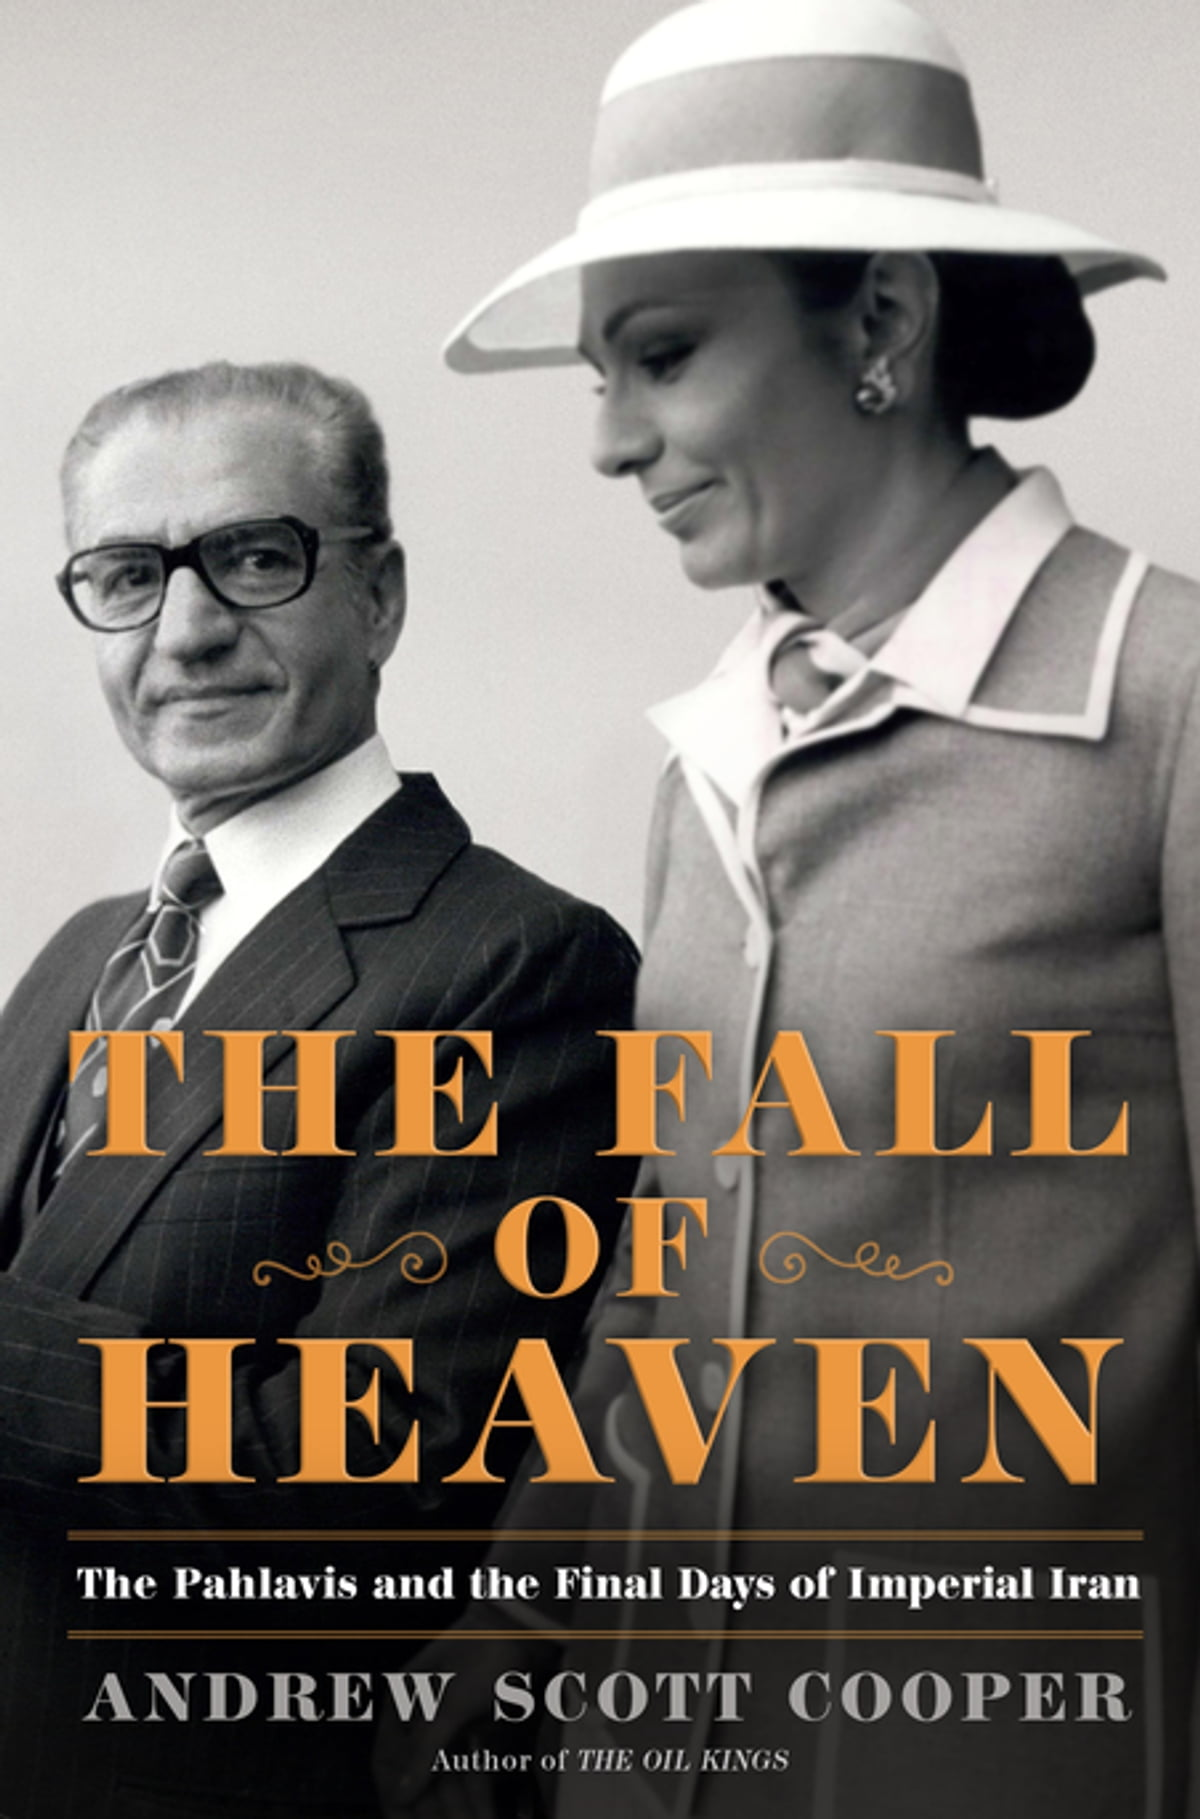 The Fall Of Heaven Ebook By Andrew Scott Cooper  9780805098983  Rakuten  Kobo